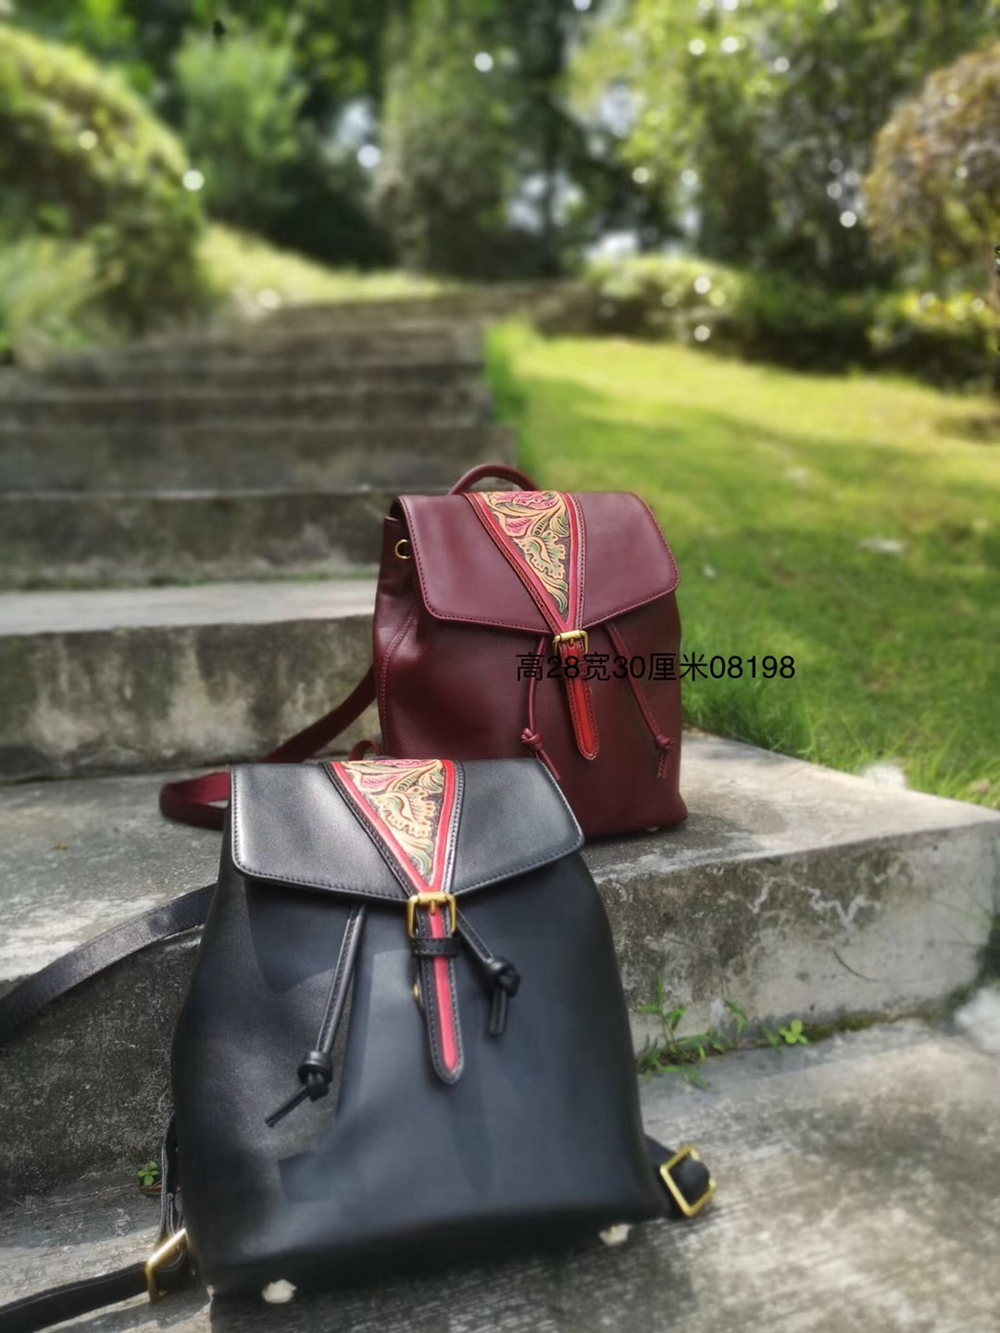 XHTY leather backpack female suede leather medium high-end original handmade leather carving free postage